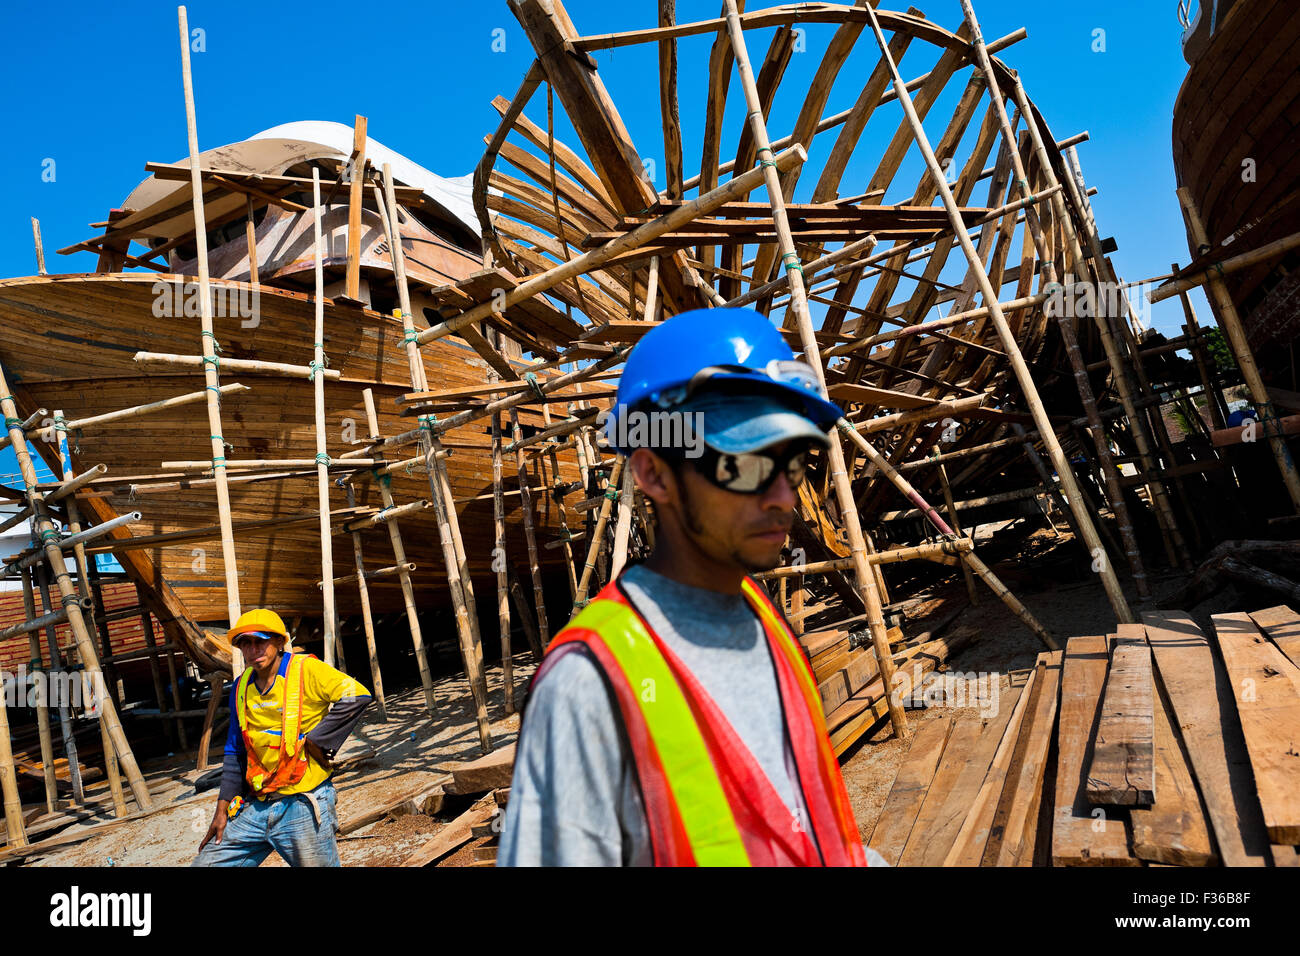 Ecuadorian shipbuilding workers build a traditional wooden fishing vessel in an artisanal shipyard in Manta, Ecuador. - Stock Image